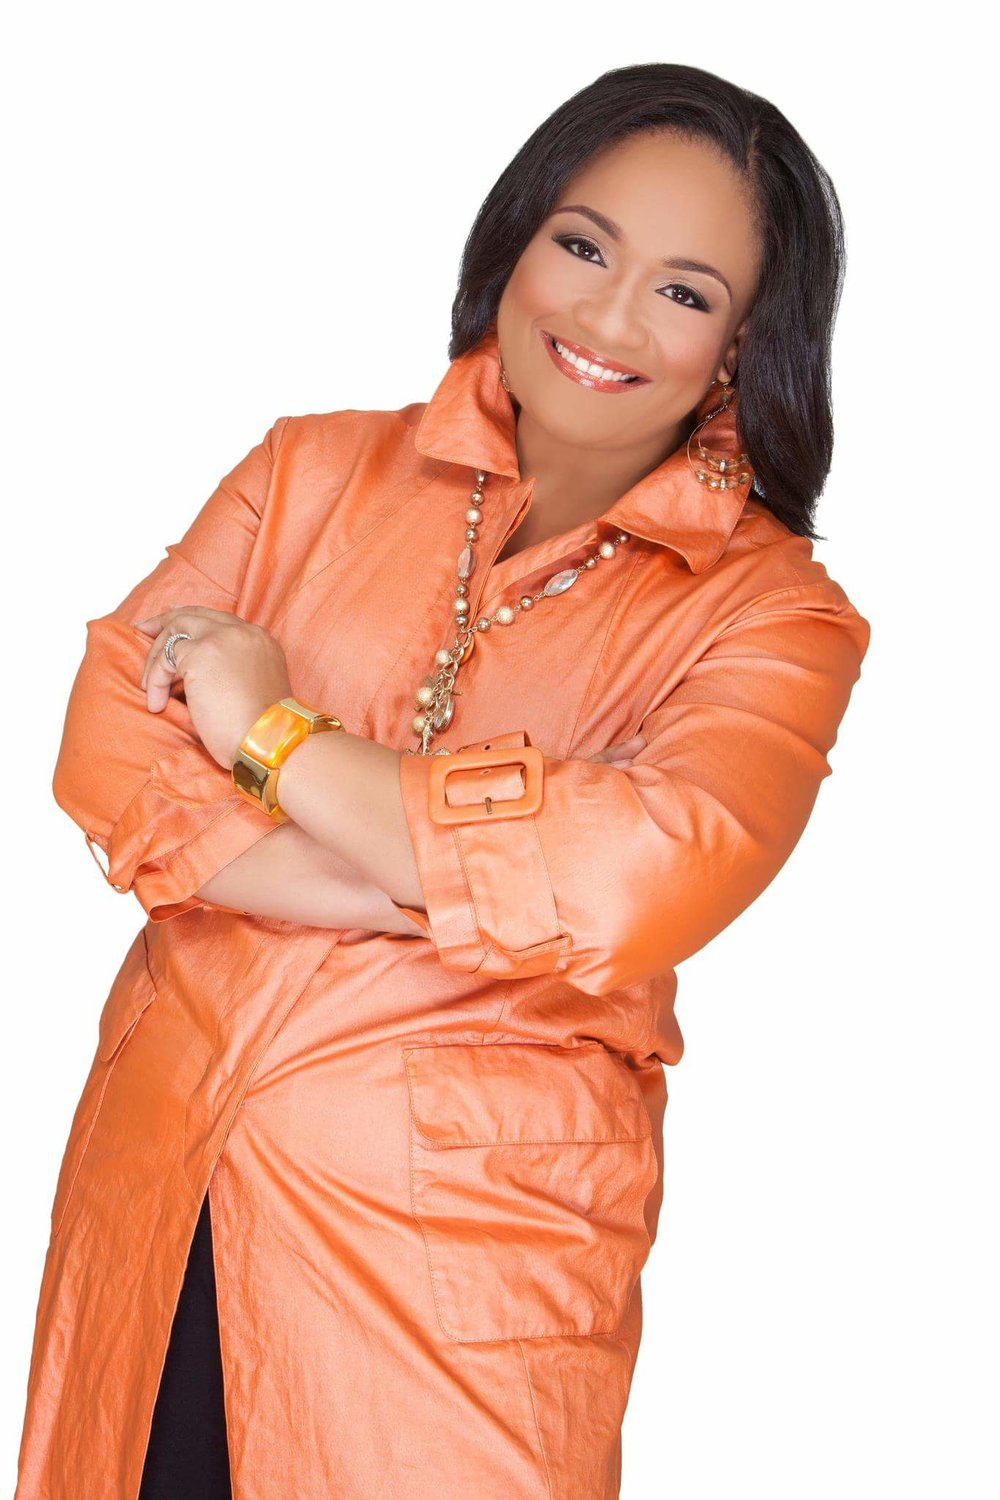 "<p><strong>Dr. Vikki Johnson</strong>CEO Soul Wealth Speaker, Author, Chaplain<a href=""/area-of-your-site""></a></p>"